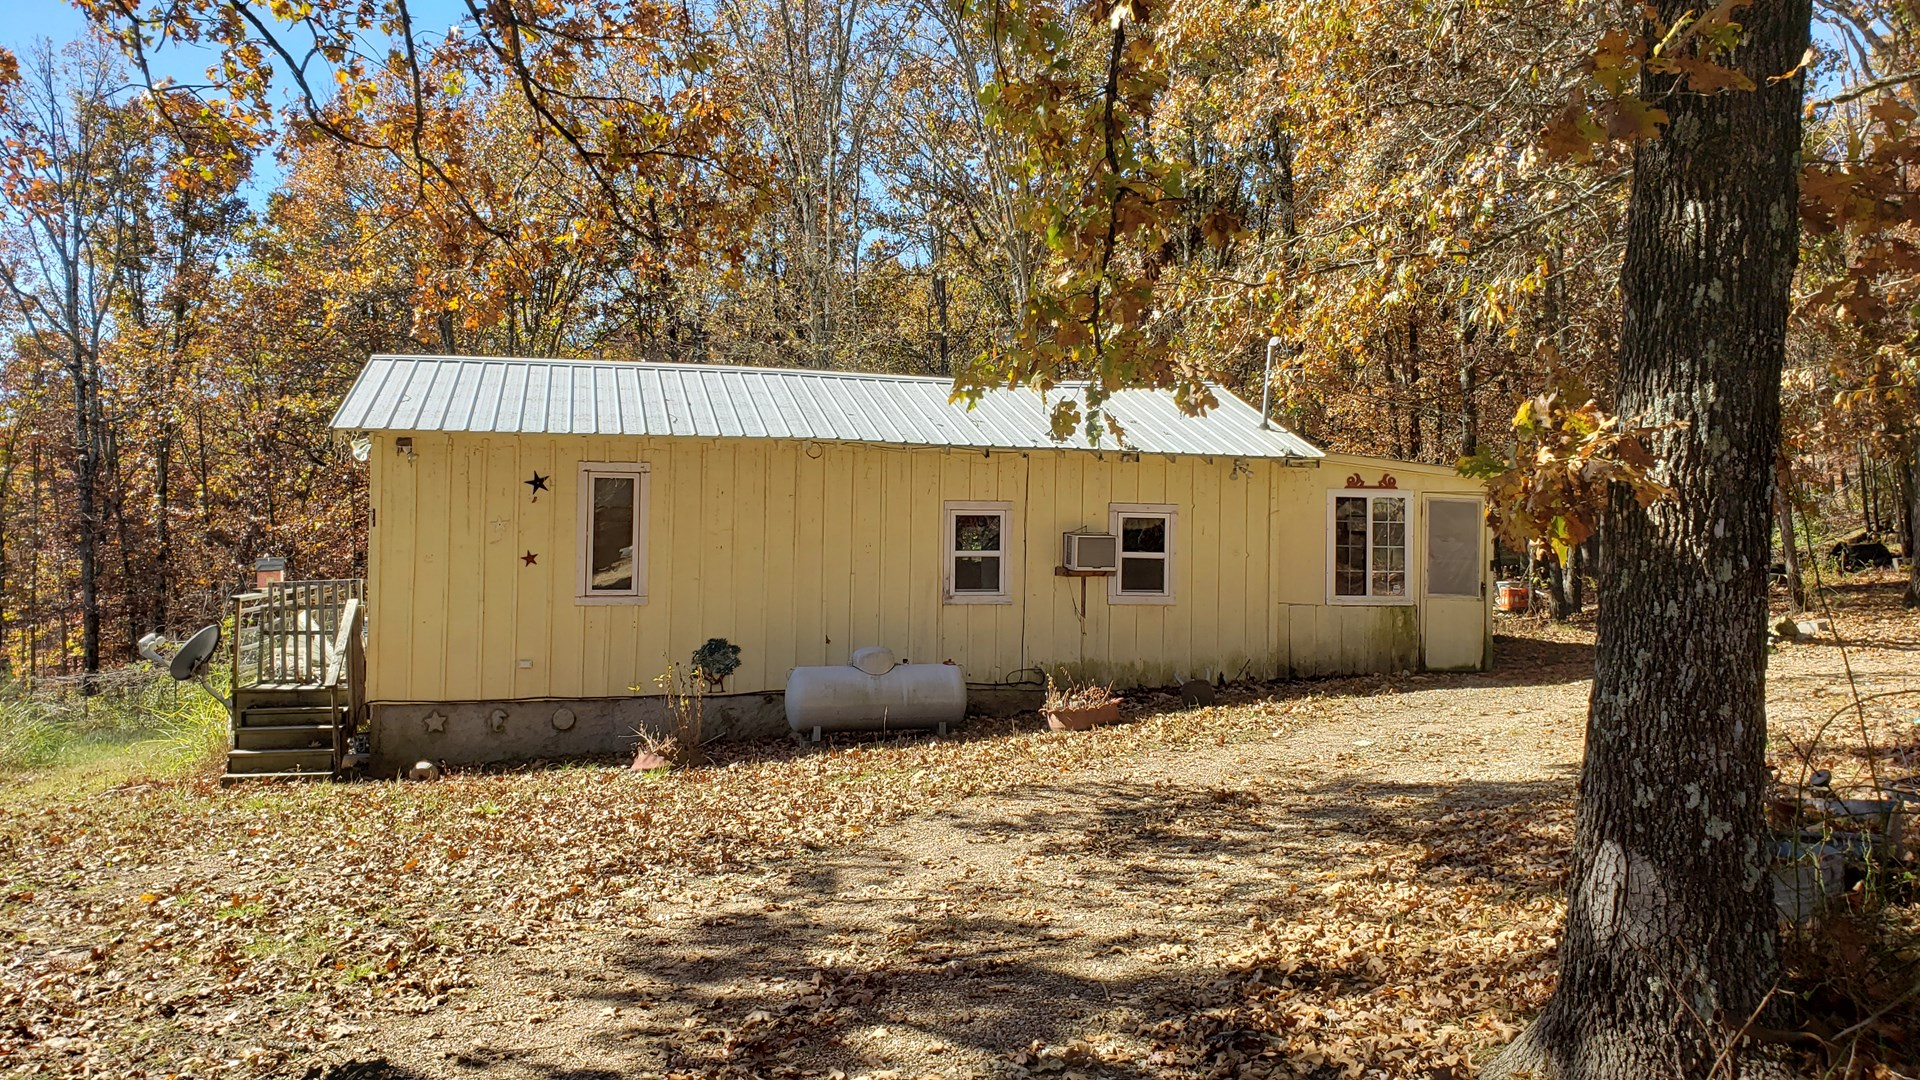 Land with Cabins for Sale in the Southern Missouri Ozarks